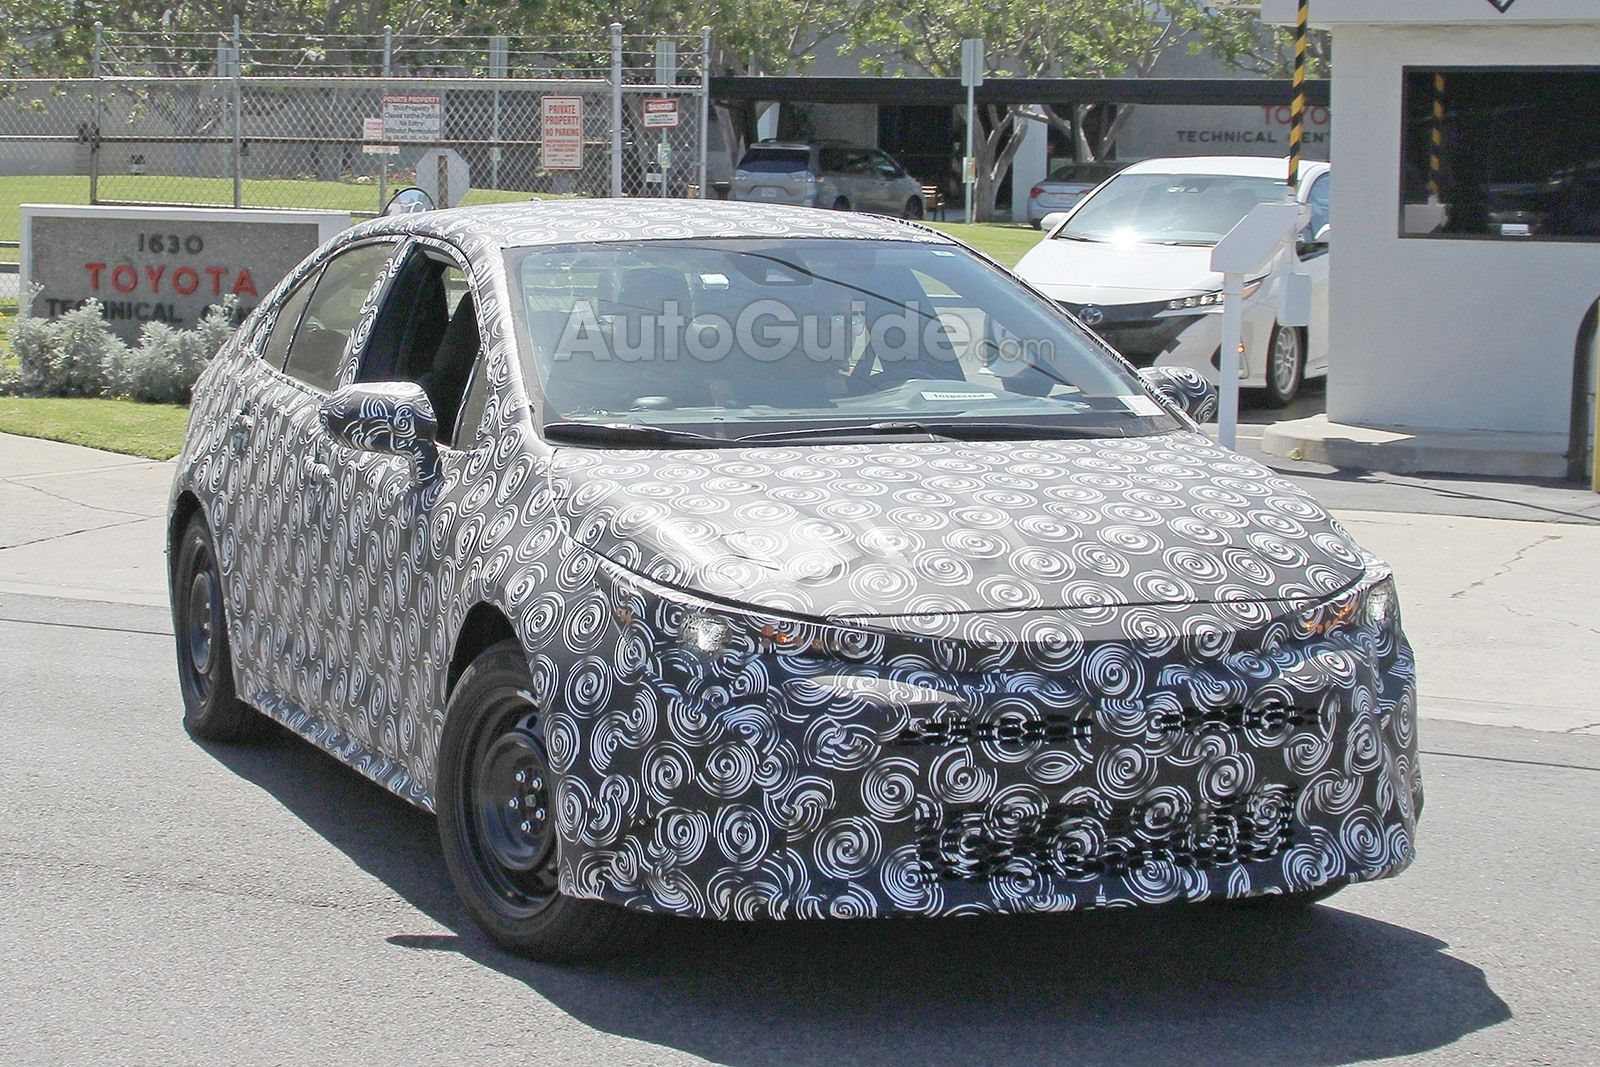 35 Best 2020 New Toyota Avensis Spy Shots Exterior and Interior